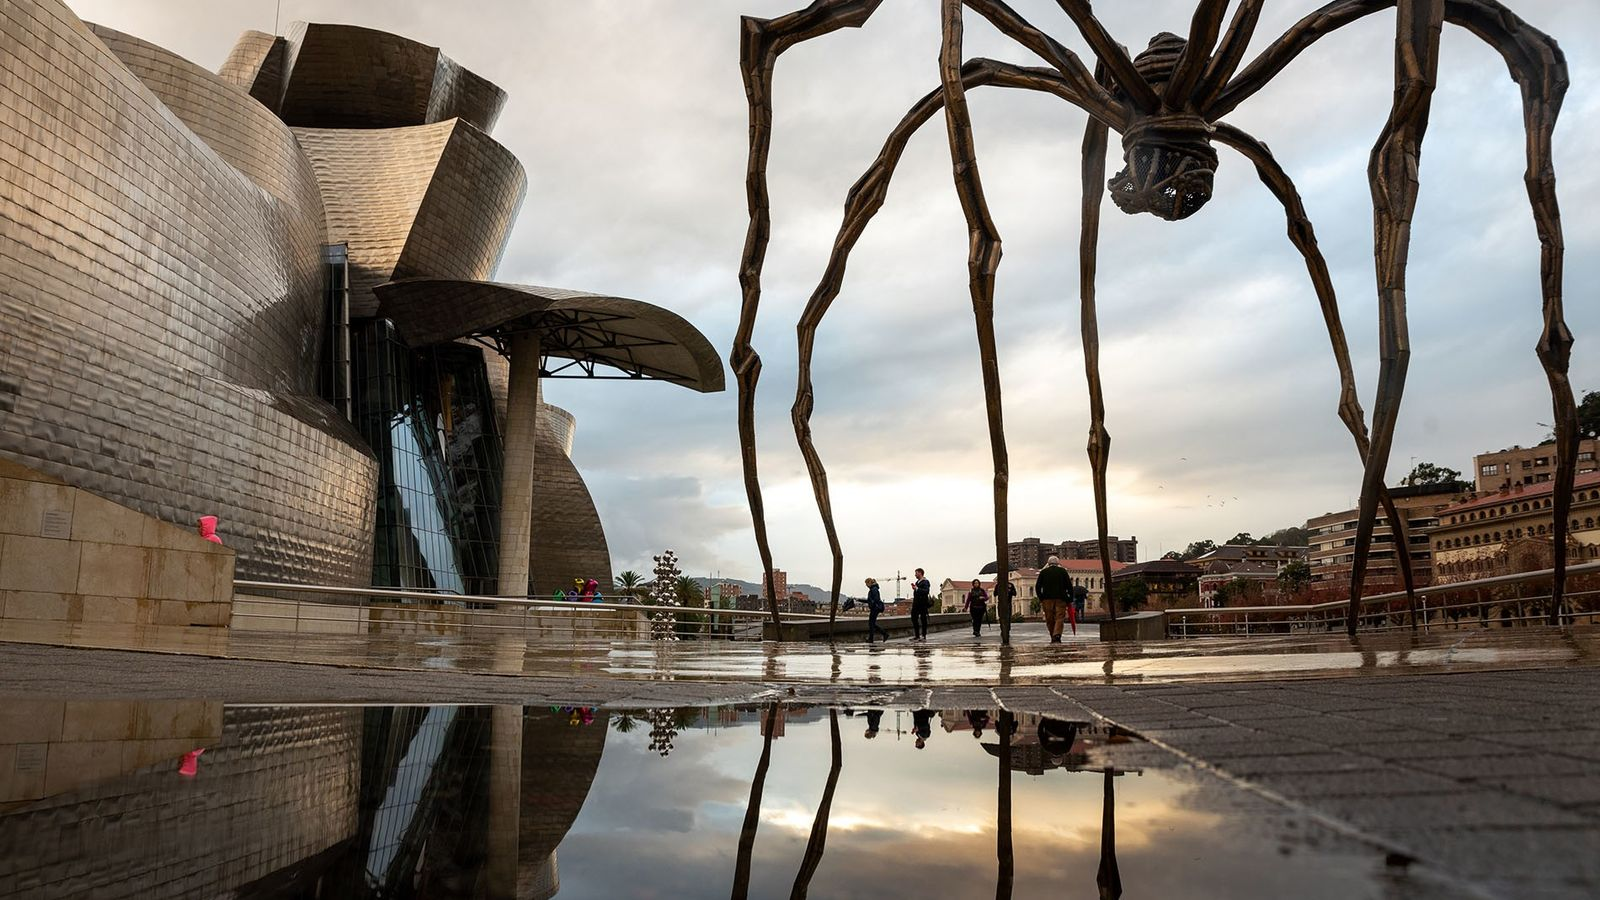 Louise Bourgeois' sculpture Maman, over 30ft high, sits outside the Guggenheim Musuem Bilbao.